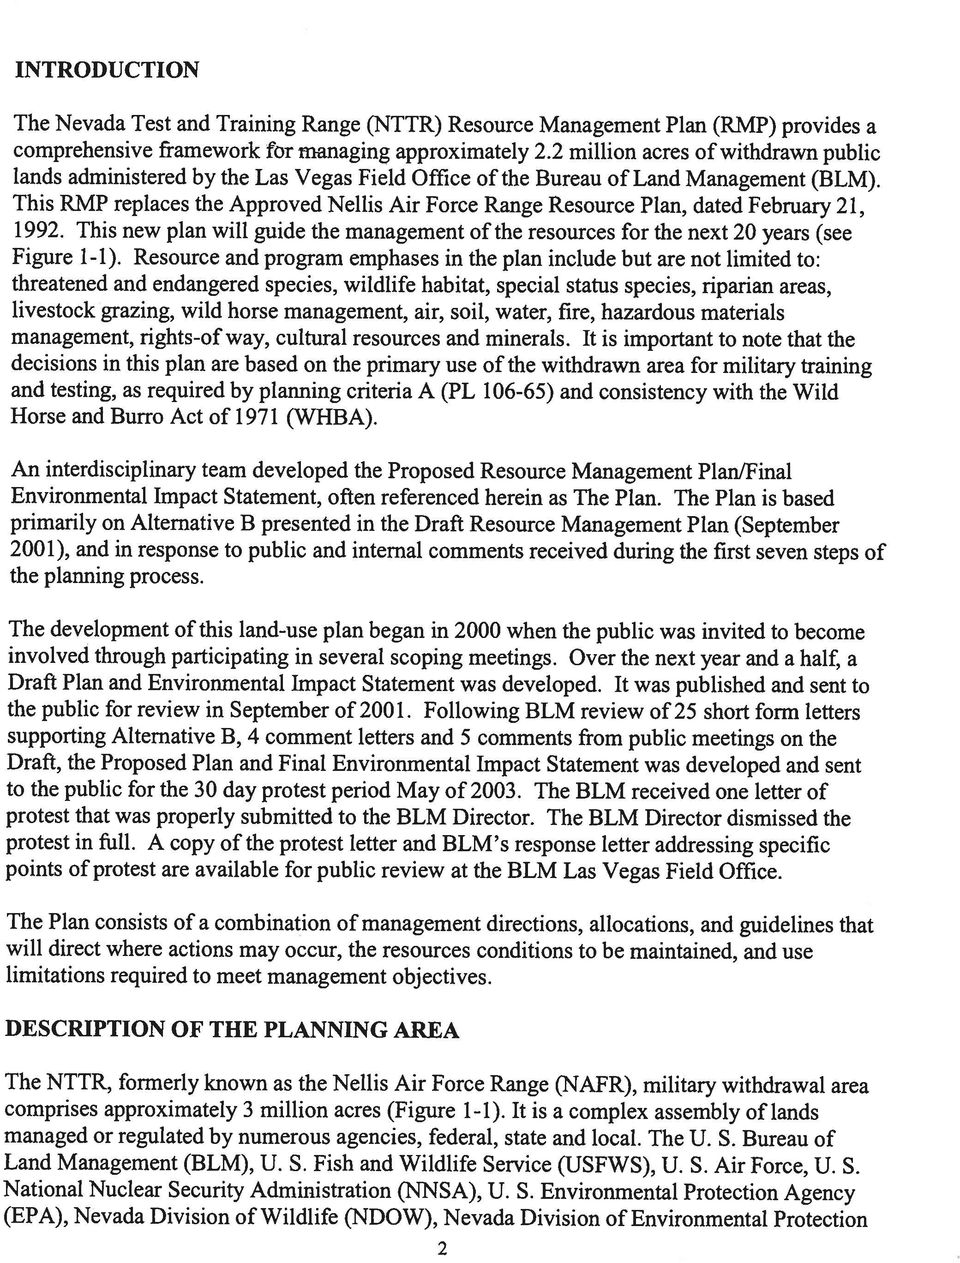 This RMP replaces the Approved Nellis Air Force Range Resource Plan, dated February 21, 1992. This new plan will guide the management of the resources for the next 20 years (see Figure 1-1).